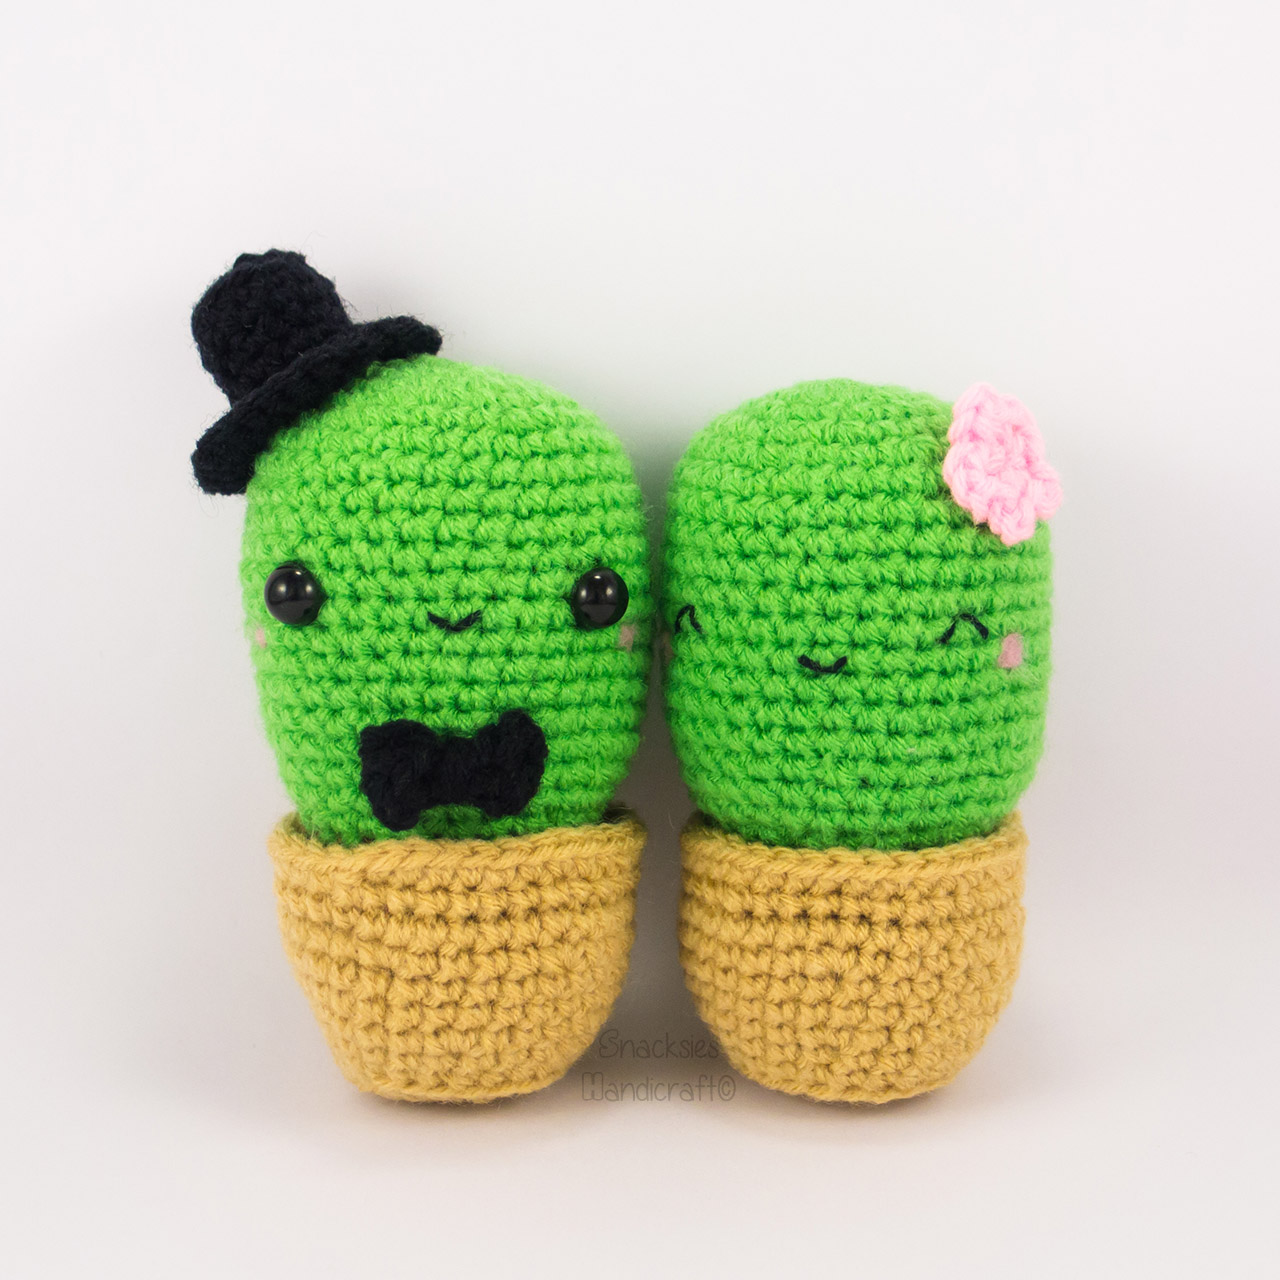 crocheted-cactus-couple-amigurumi